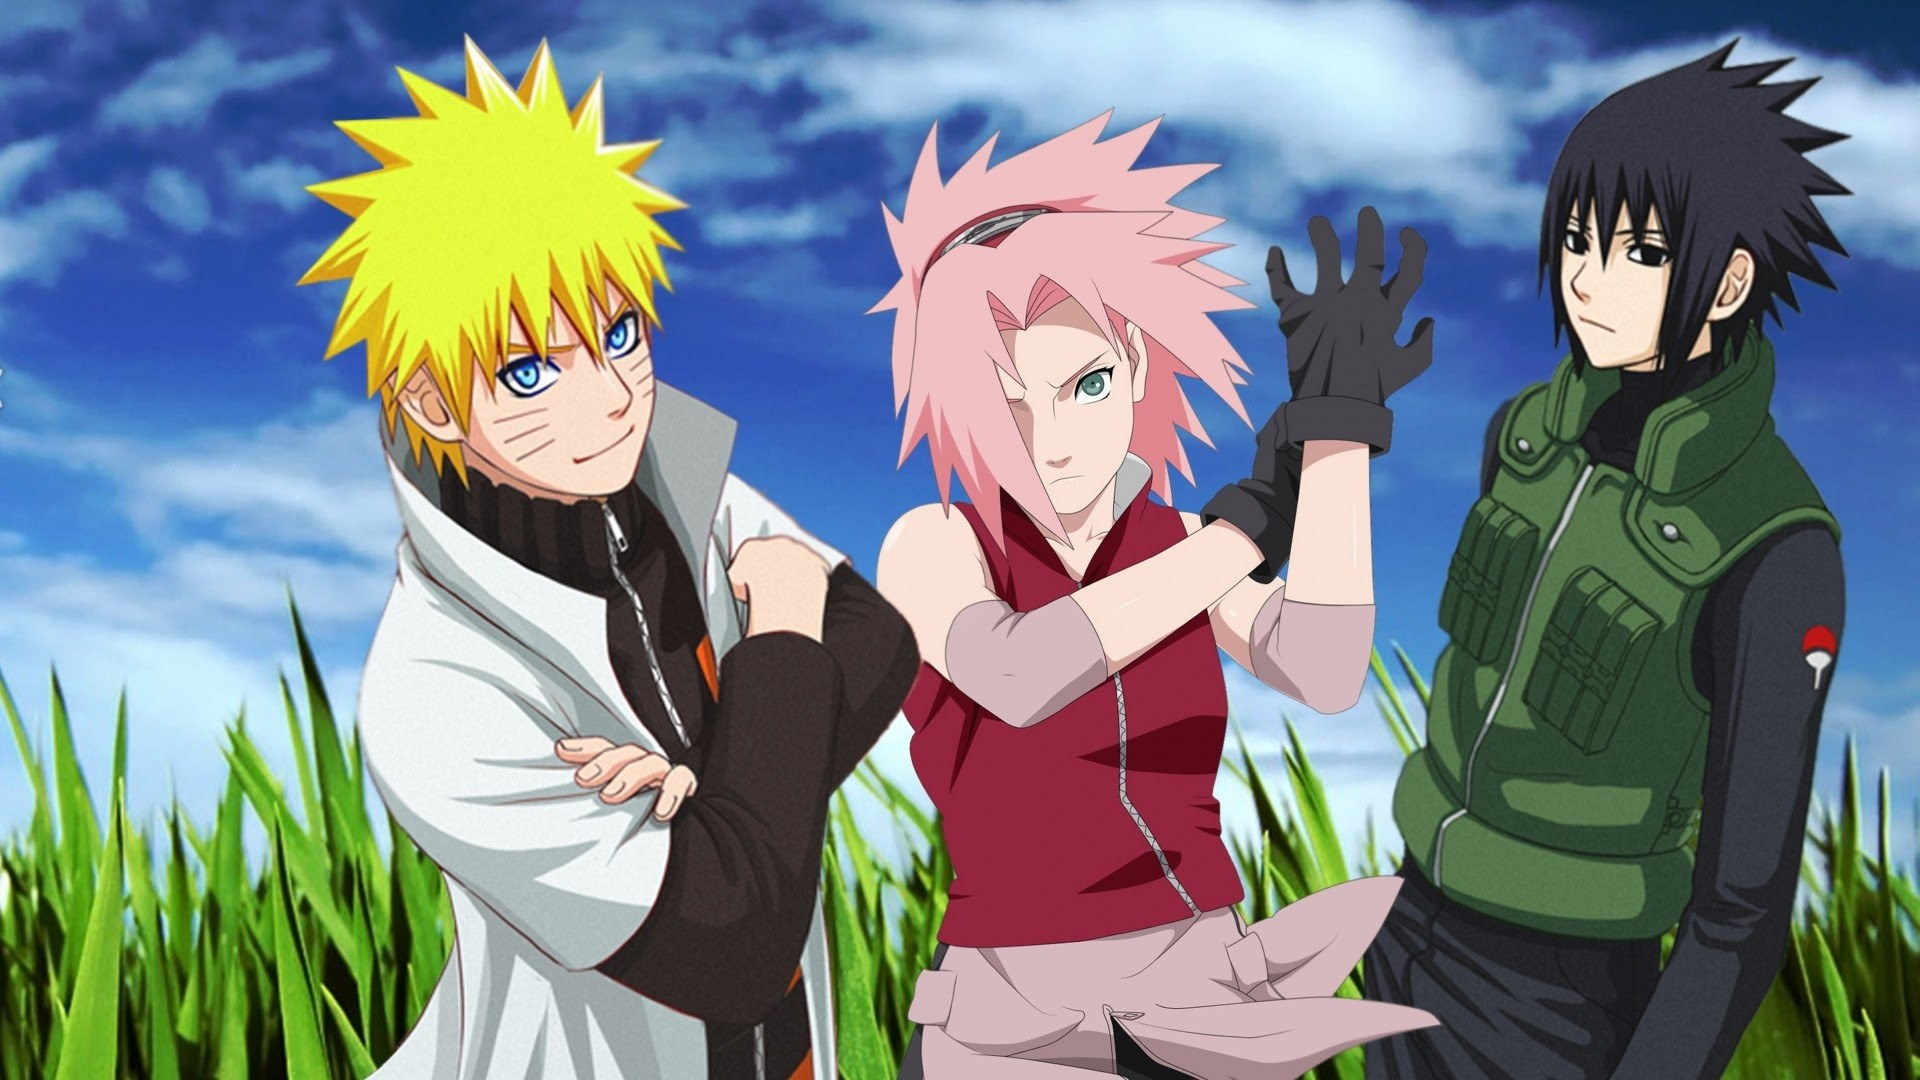 Best fight of whole shippuden and the most underrated one..I just wanted the creator to be a little more creative and gave might guy justice..I think he should have made gate of death more powerful..like if a person open all 8 gates no jutsu will work on him..that would have been so satisfying to watch..Even naruto fanboys would compliment that fight..